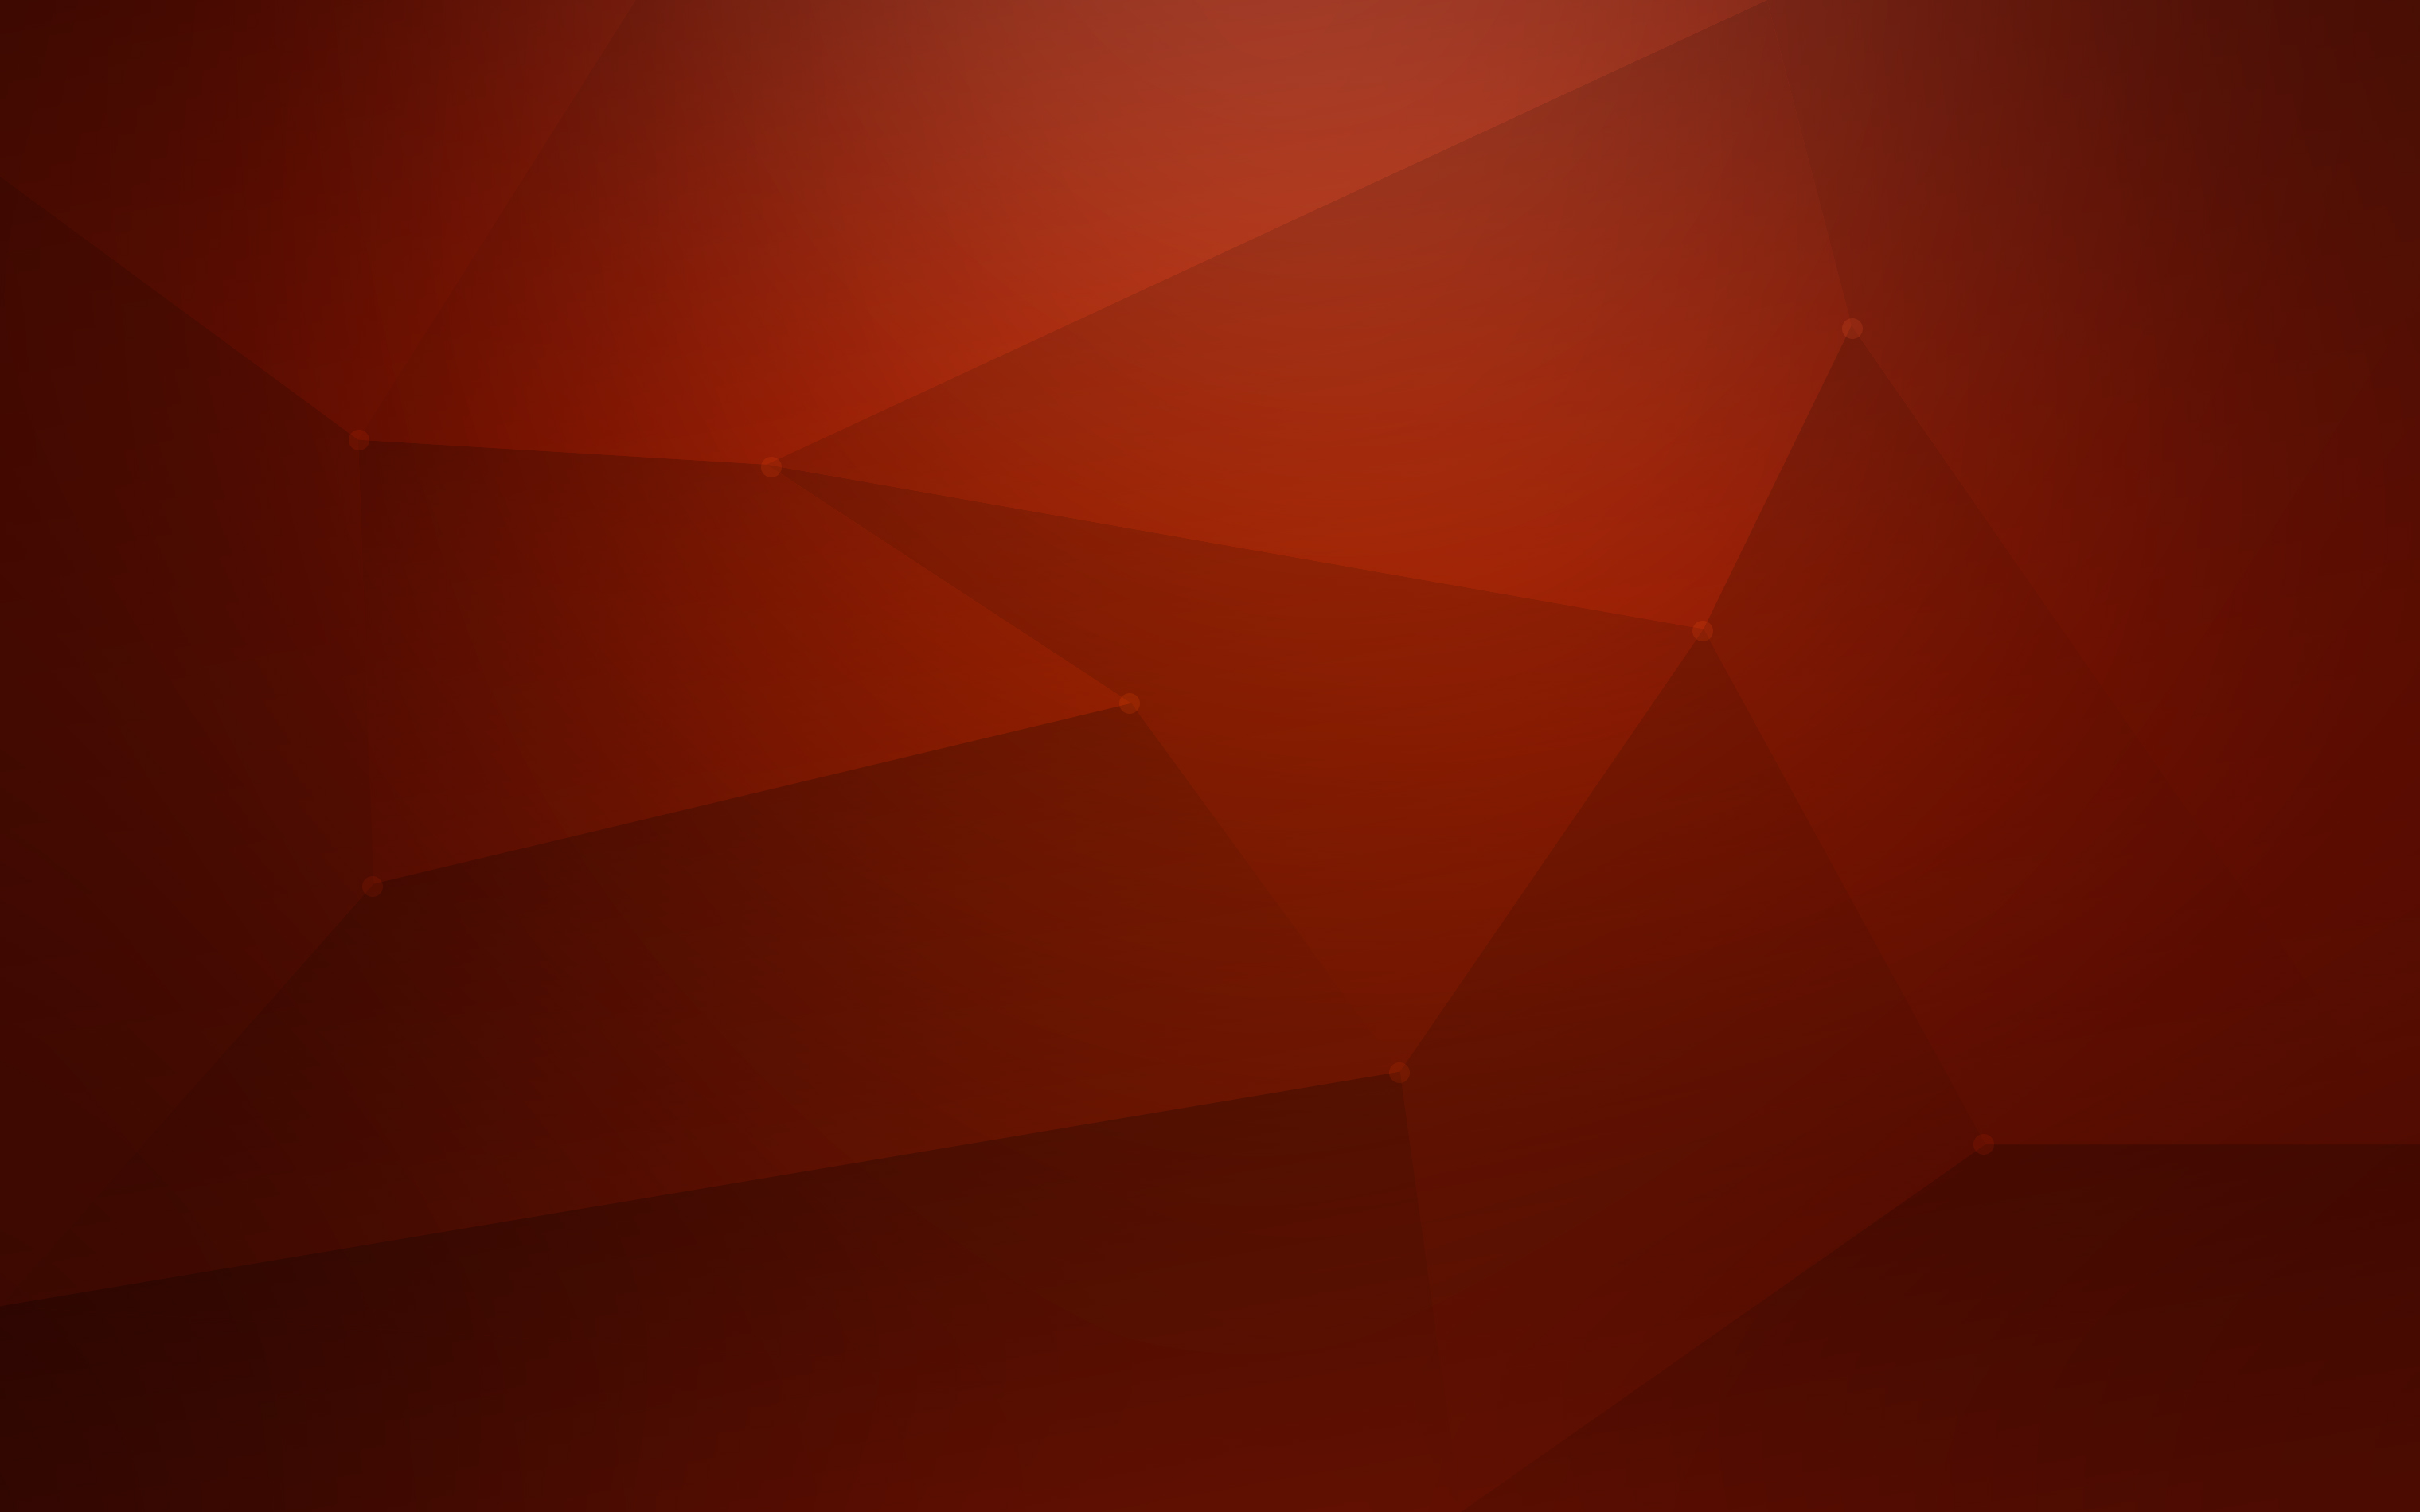 Ubuntu-red-wallpaper